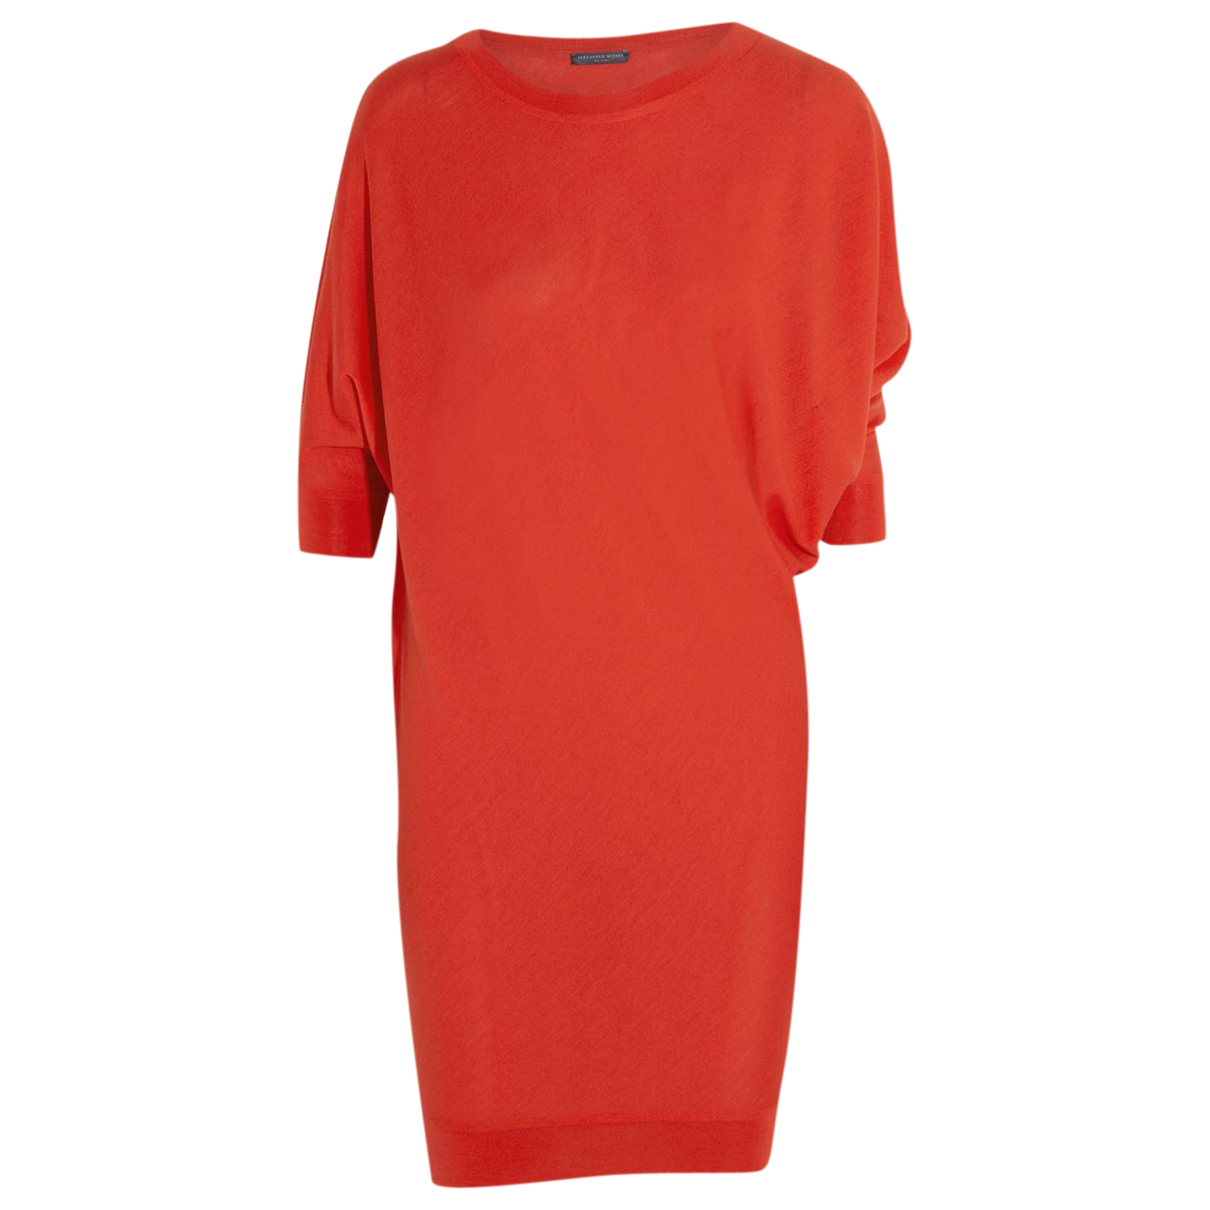 Alexander Mcqueen \N Pullover in  Rot Wolle